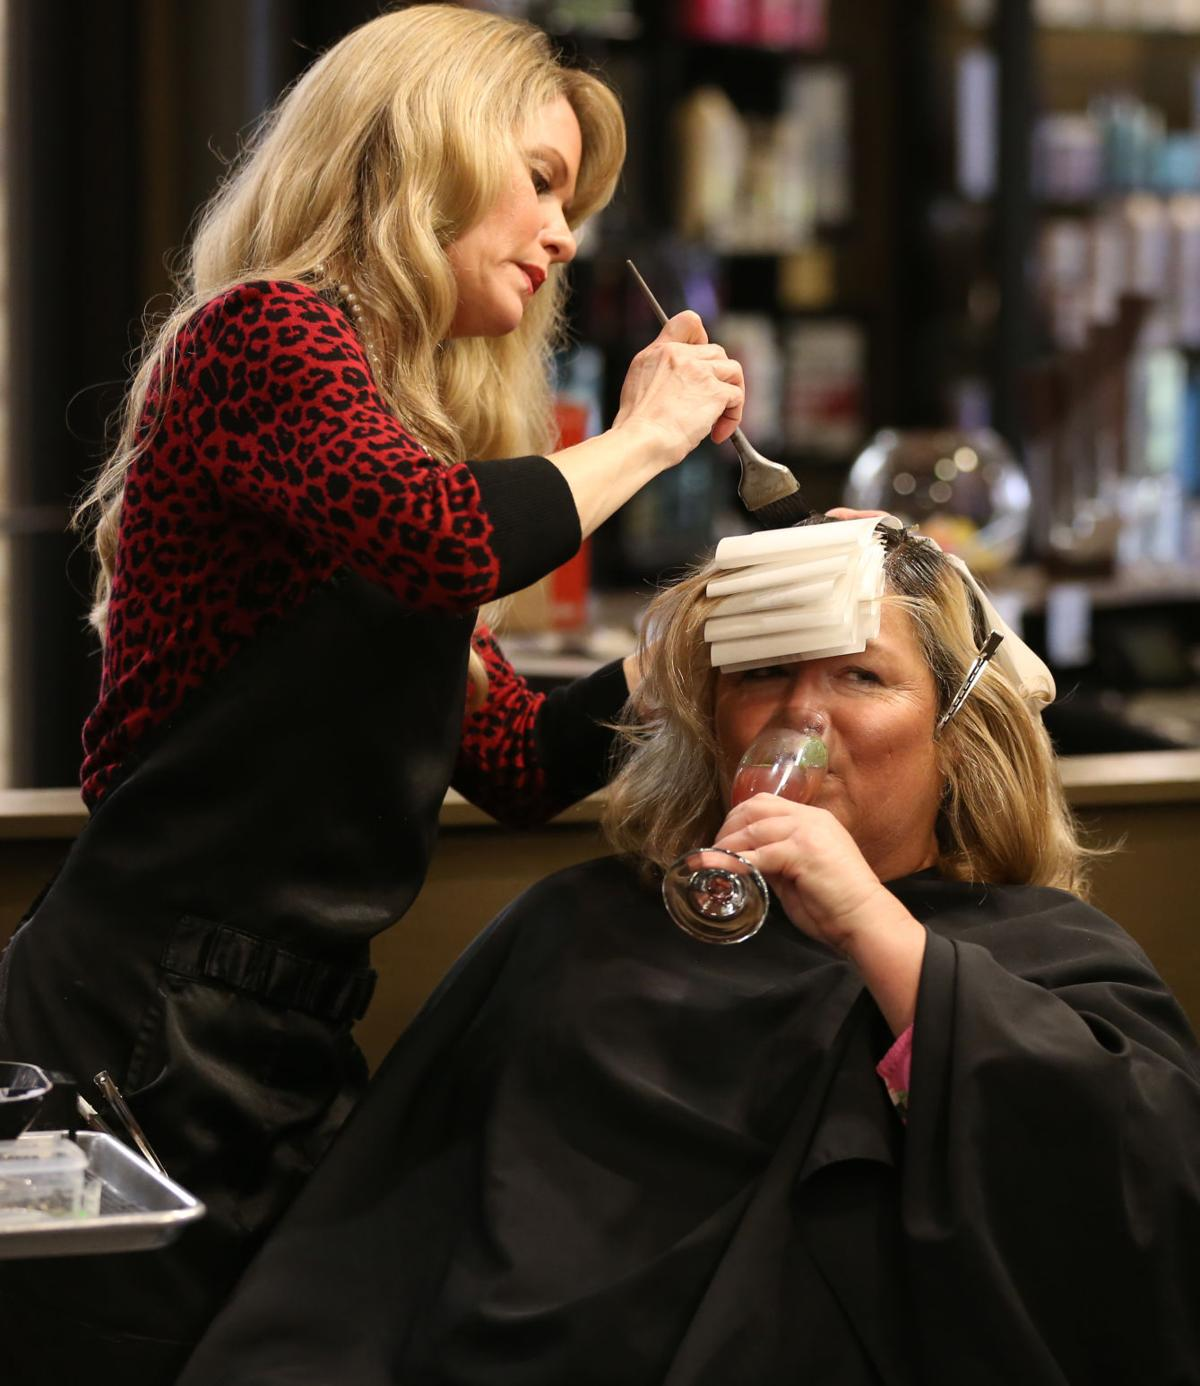 Beauty and the booze: Salons now (legally) serving alcohol